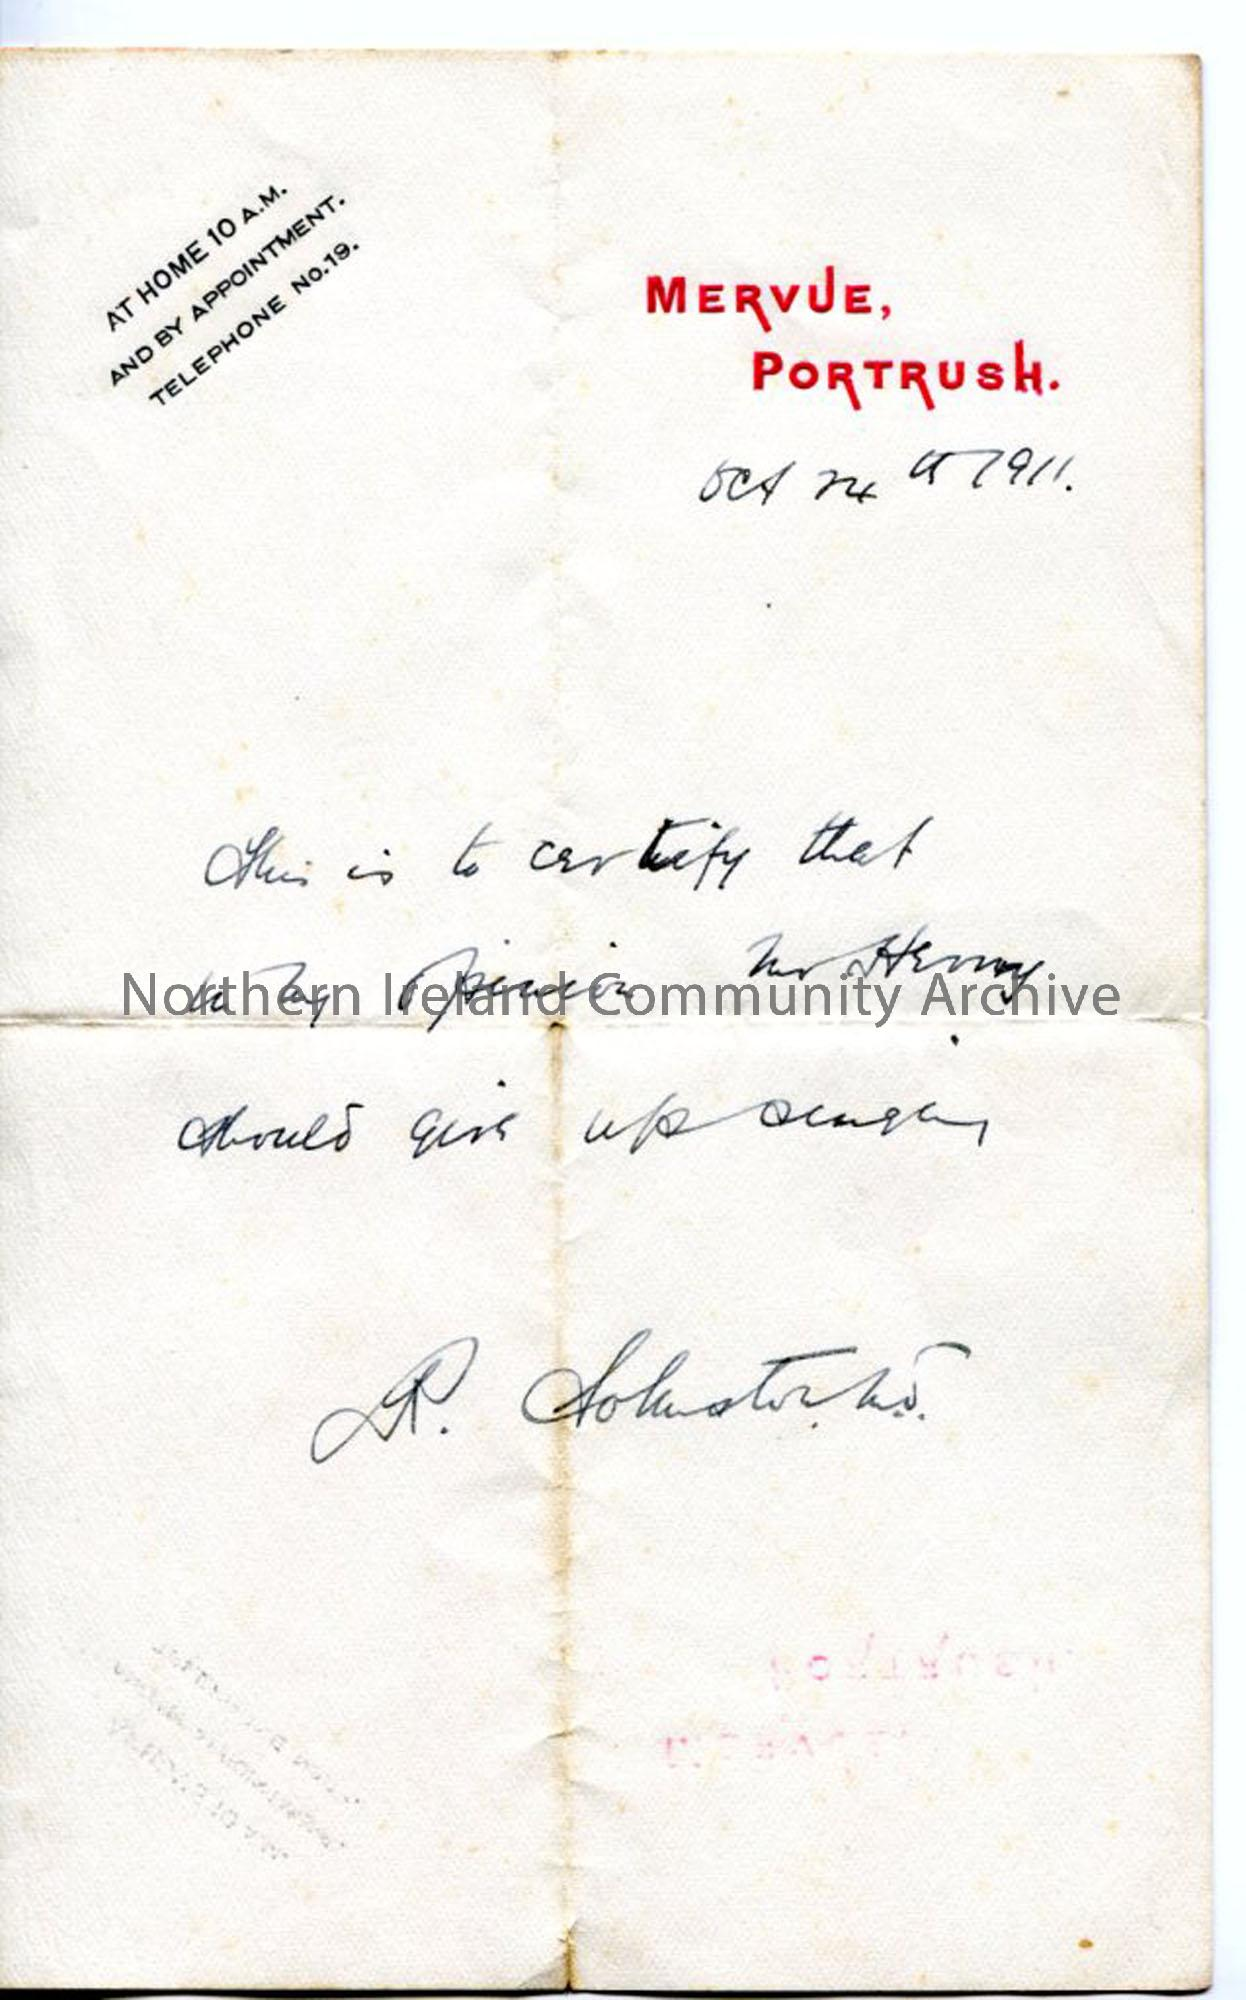 Letter from Dr R Johnston, dated 14.10.1911